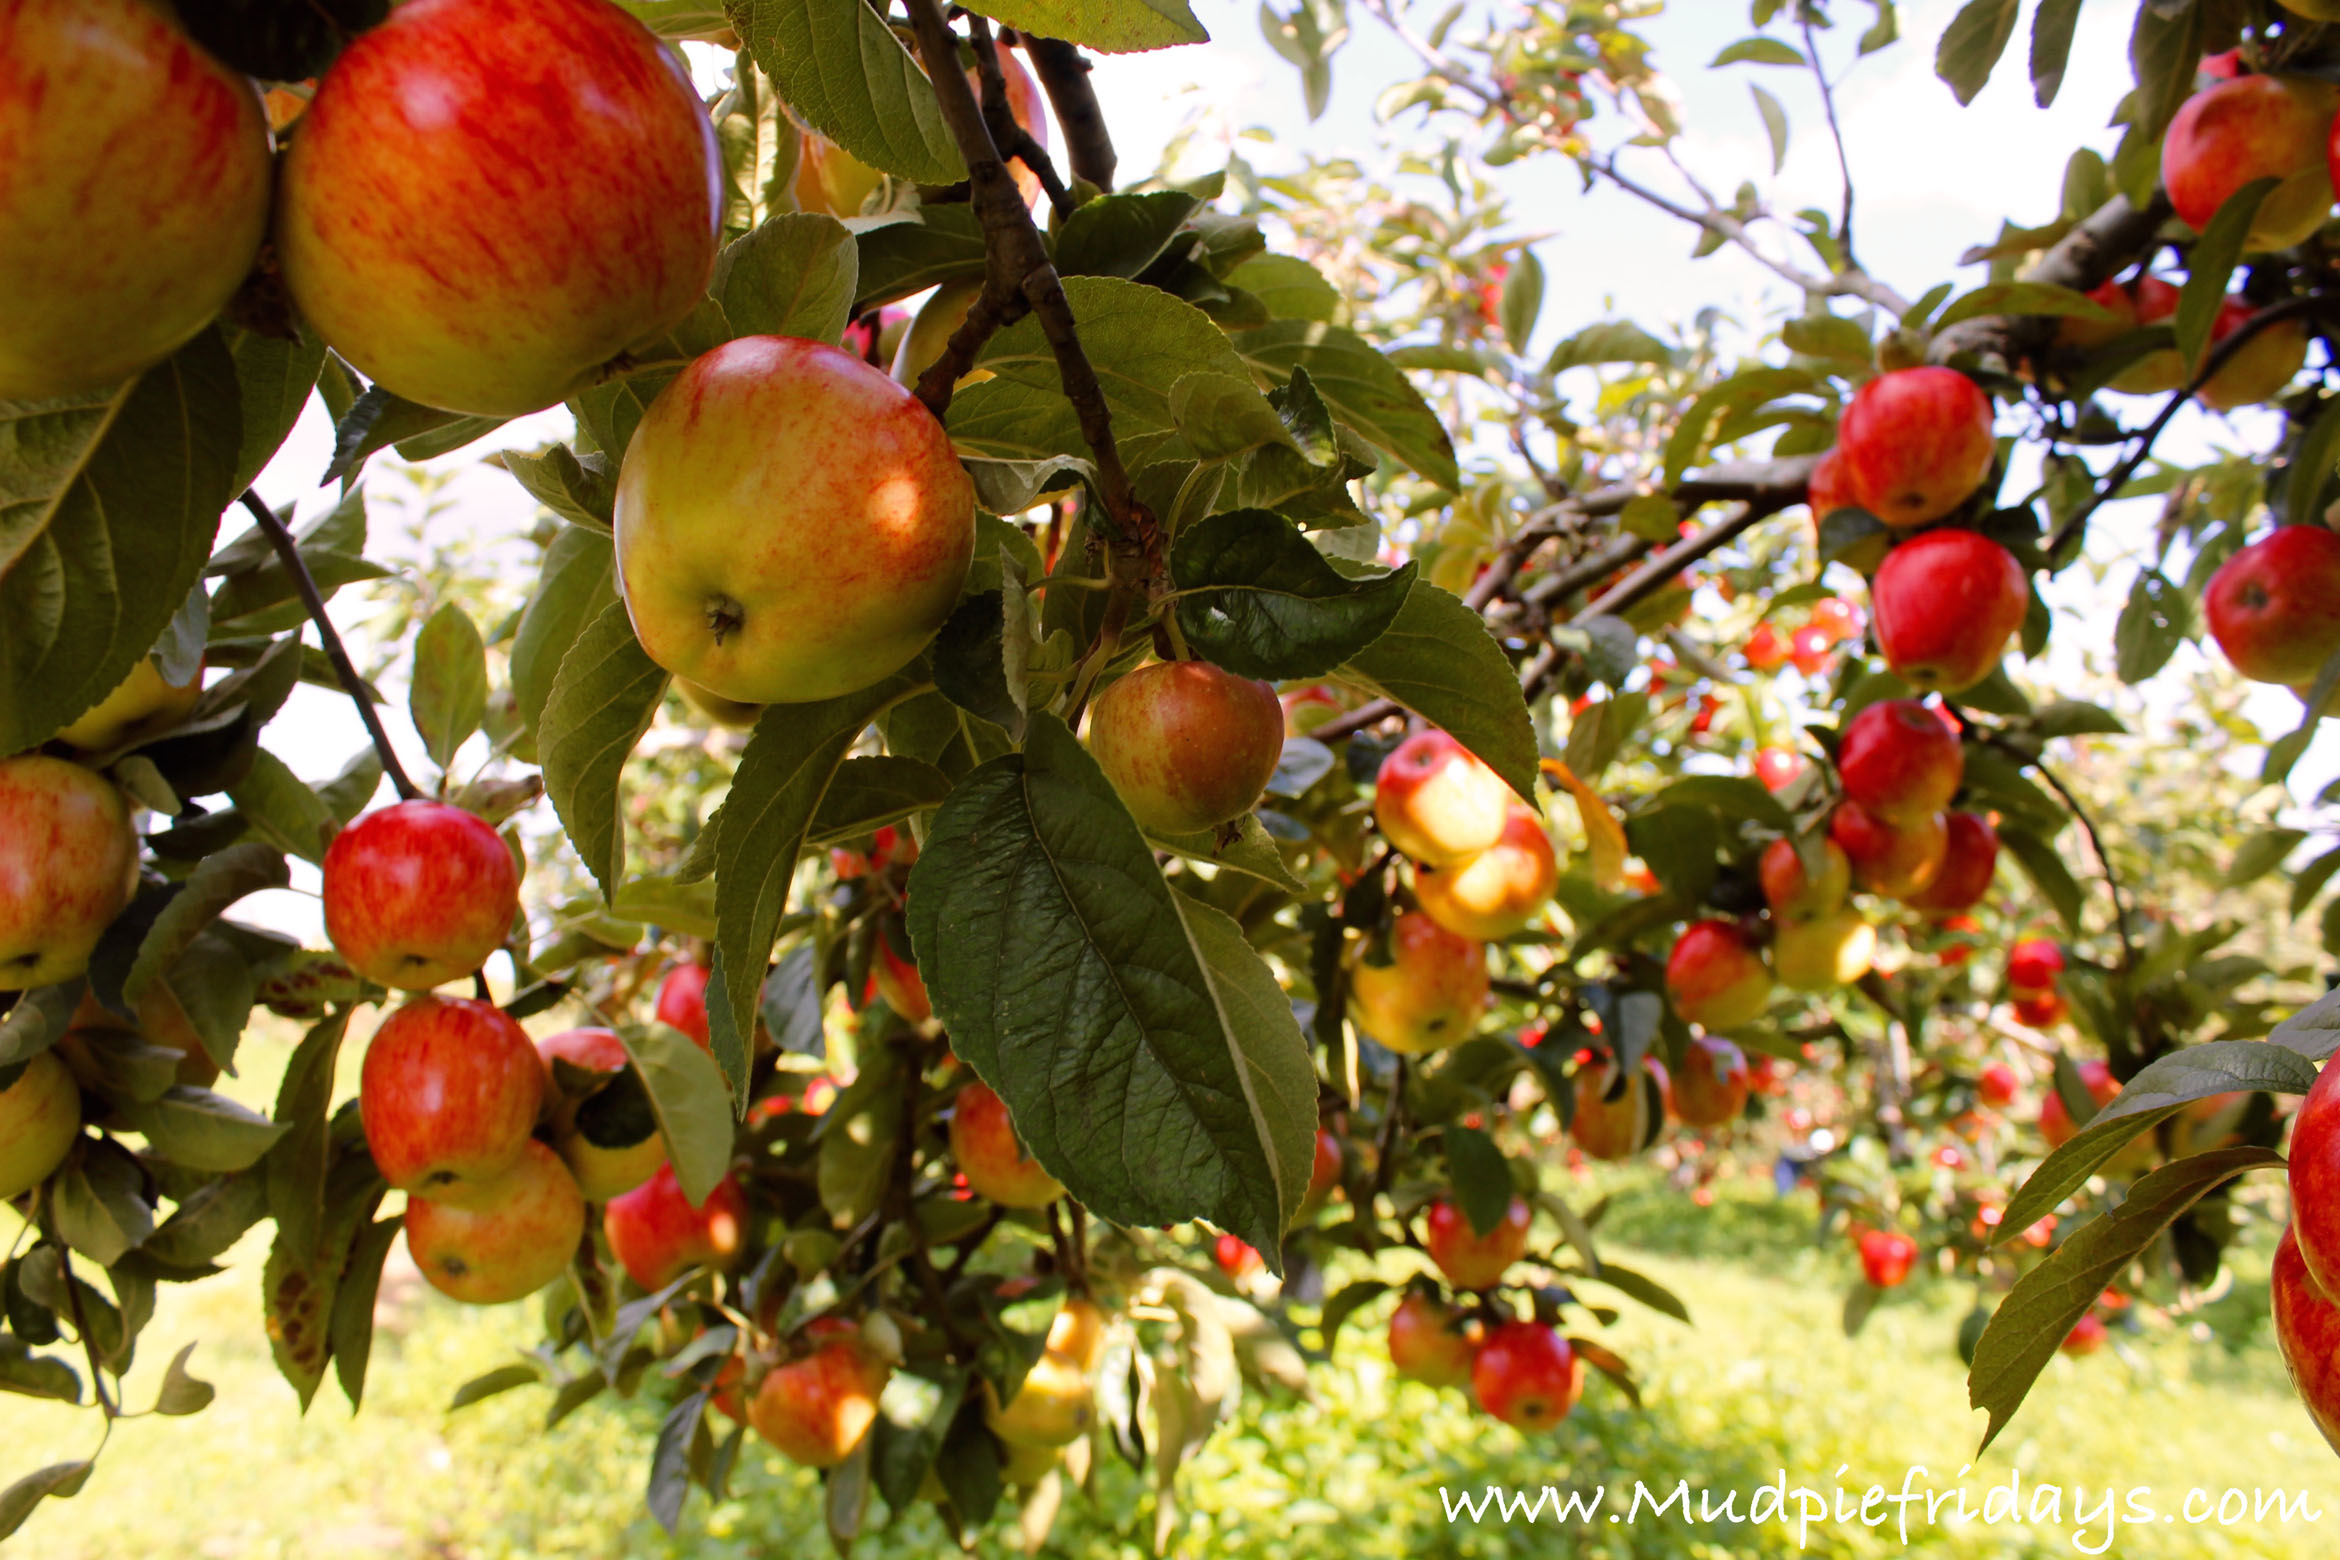 Apple picking at Castle Farm